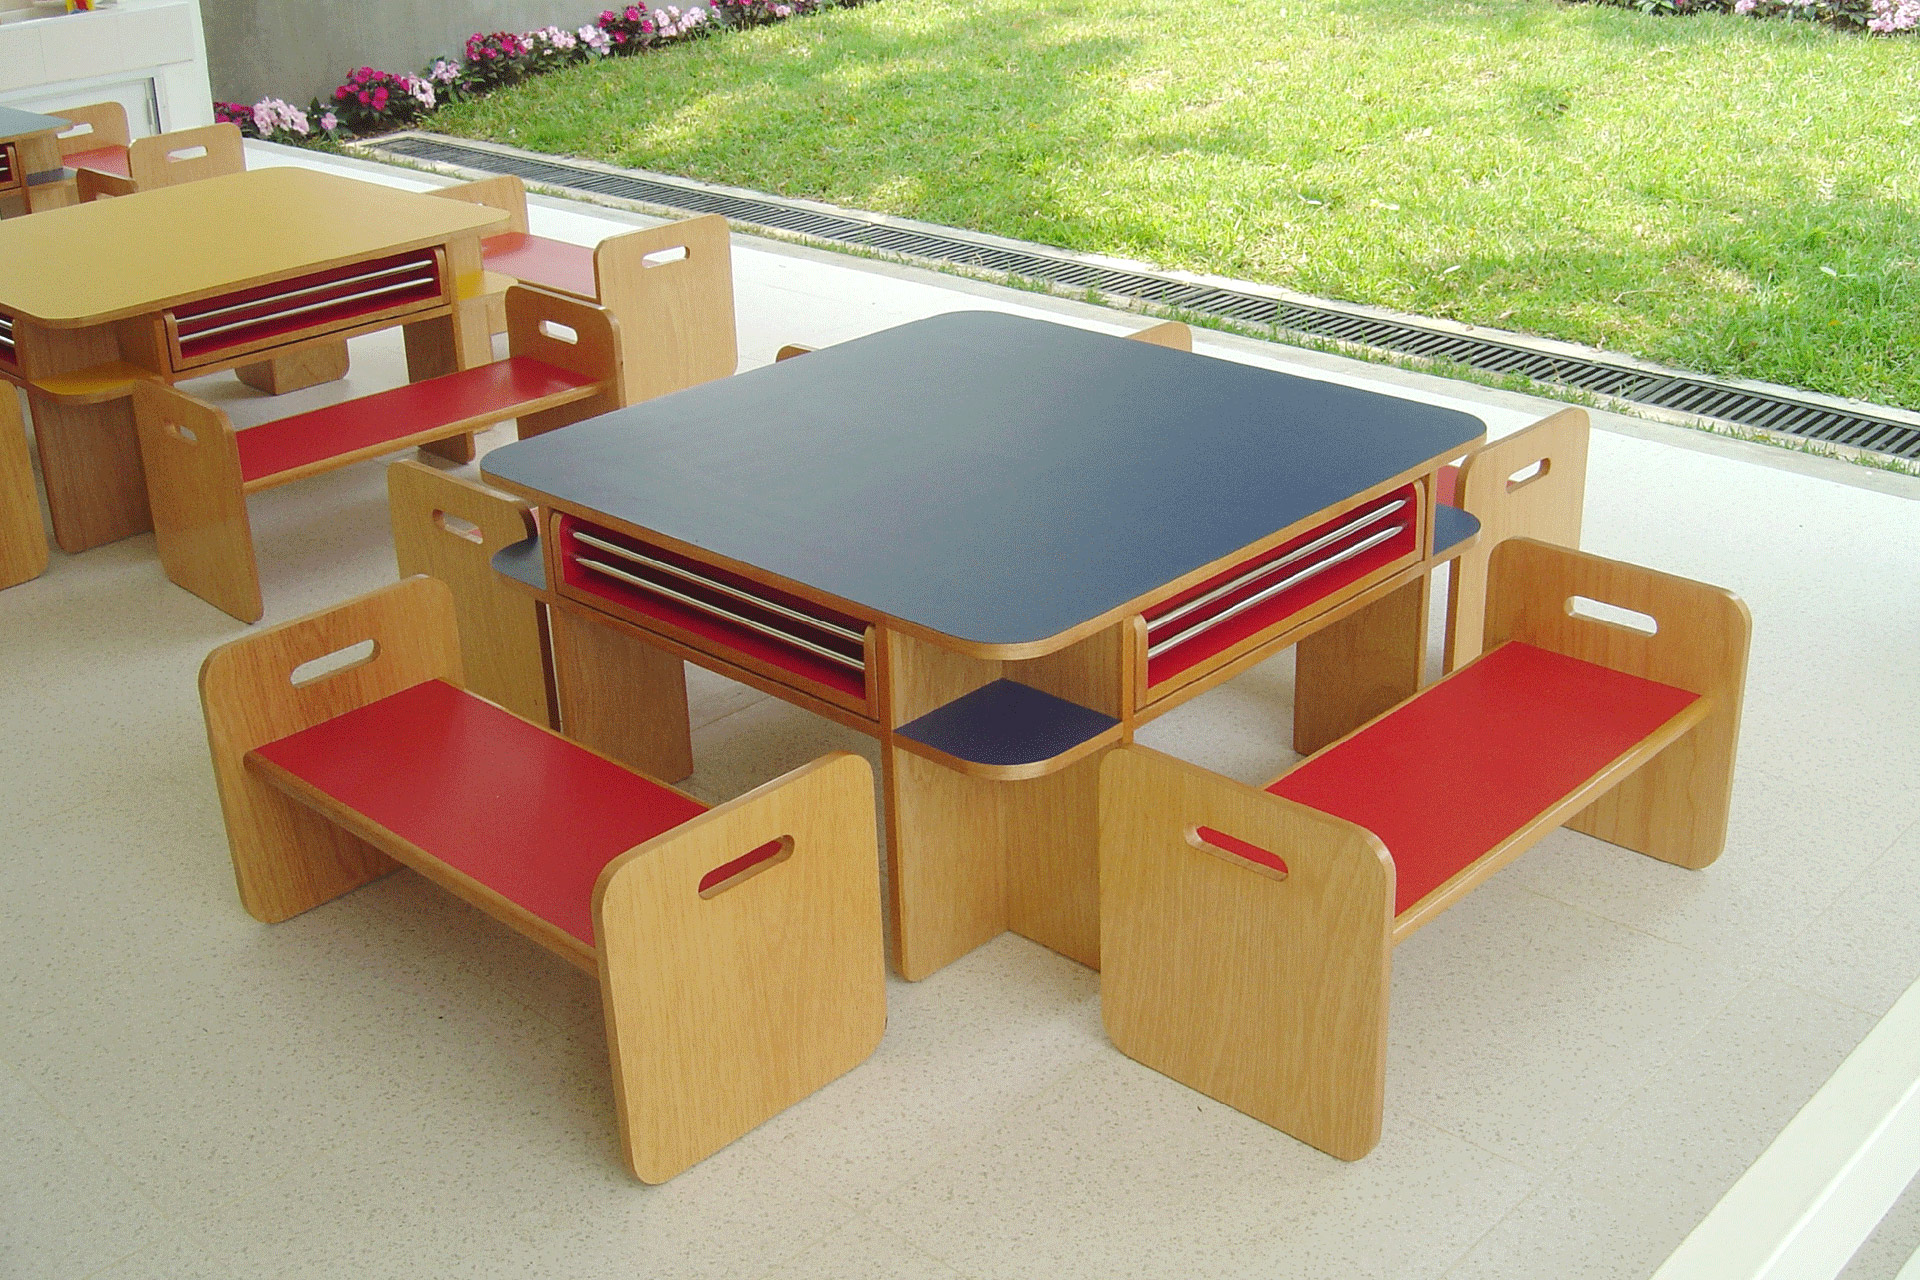 Preschool Classroom Furnitures ~ Preschool classroom melissa rivera